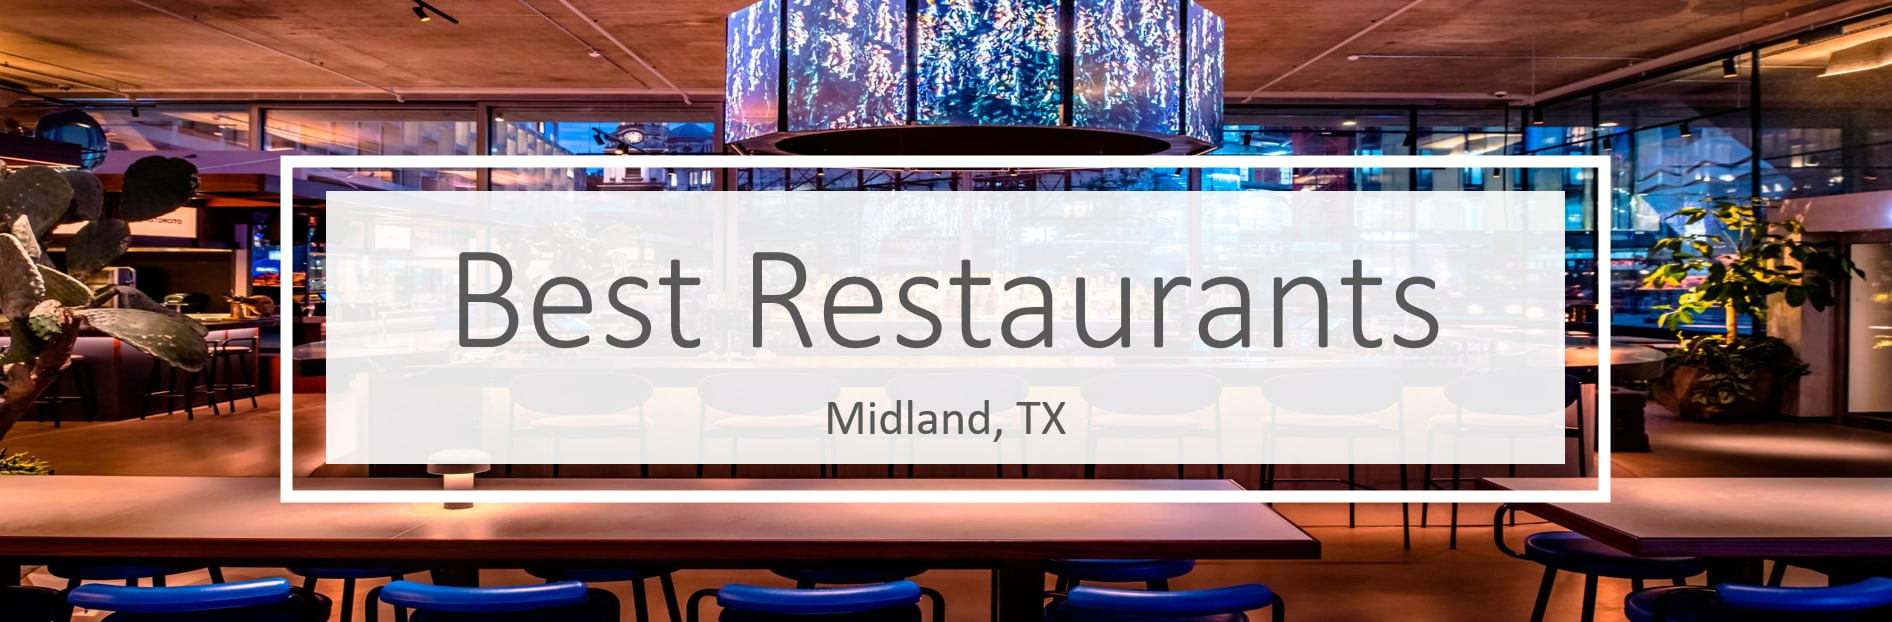 Best restaurants in Midland, Texas